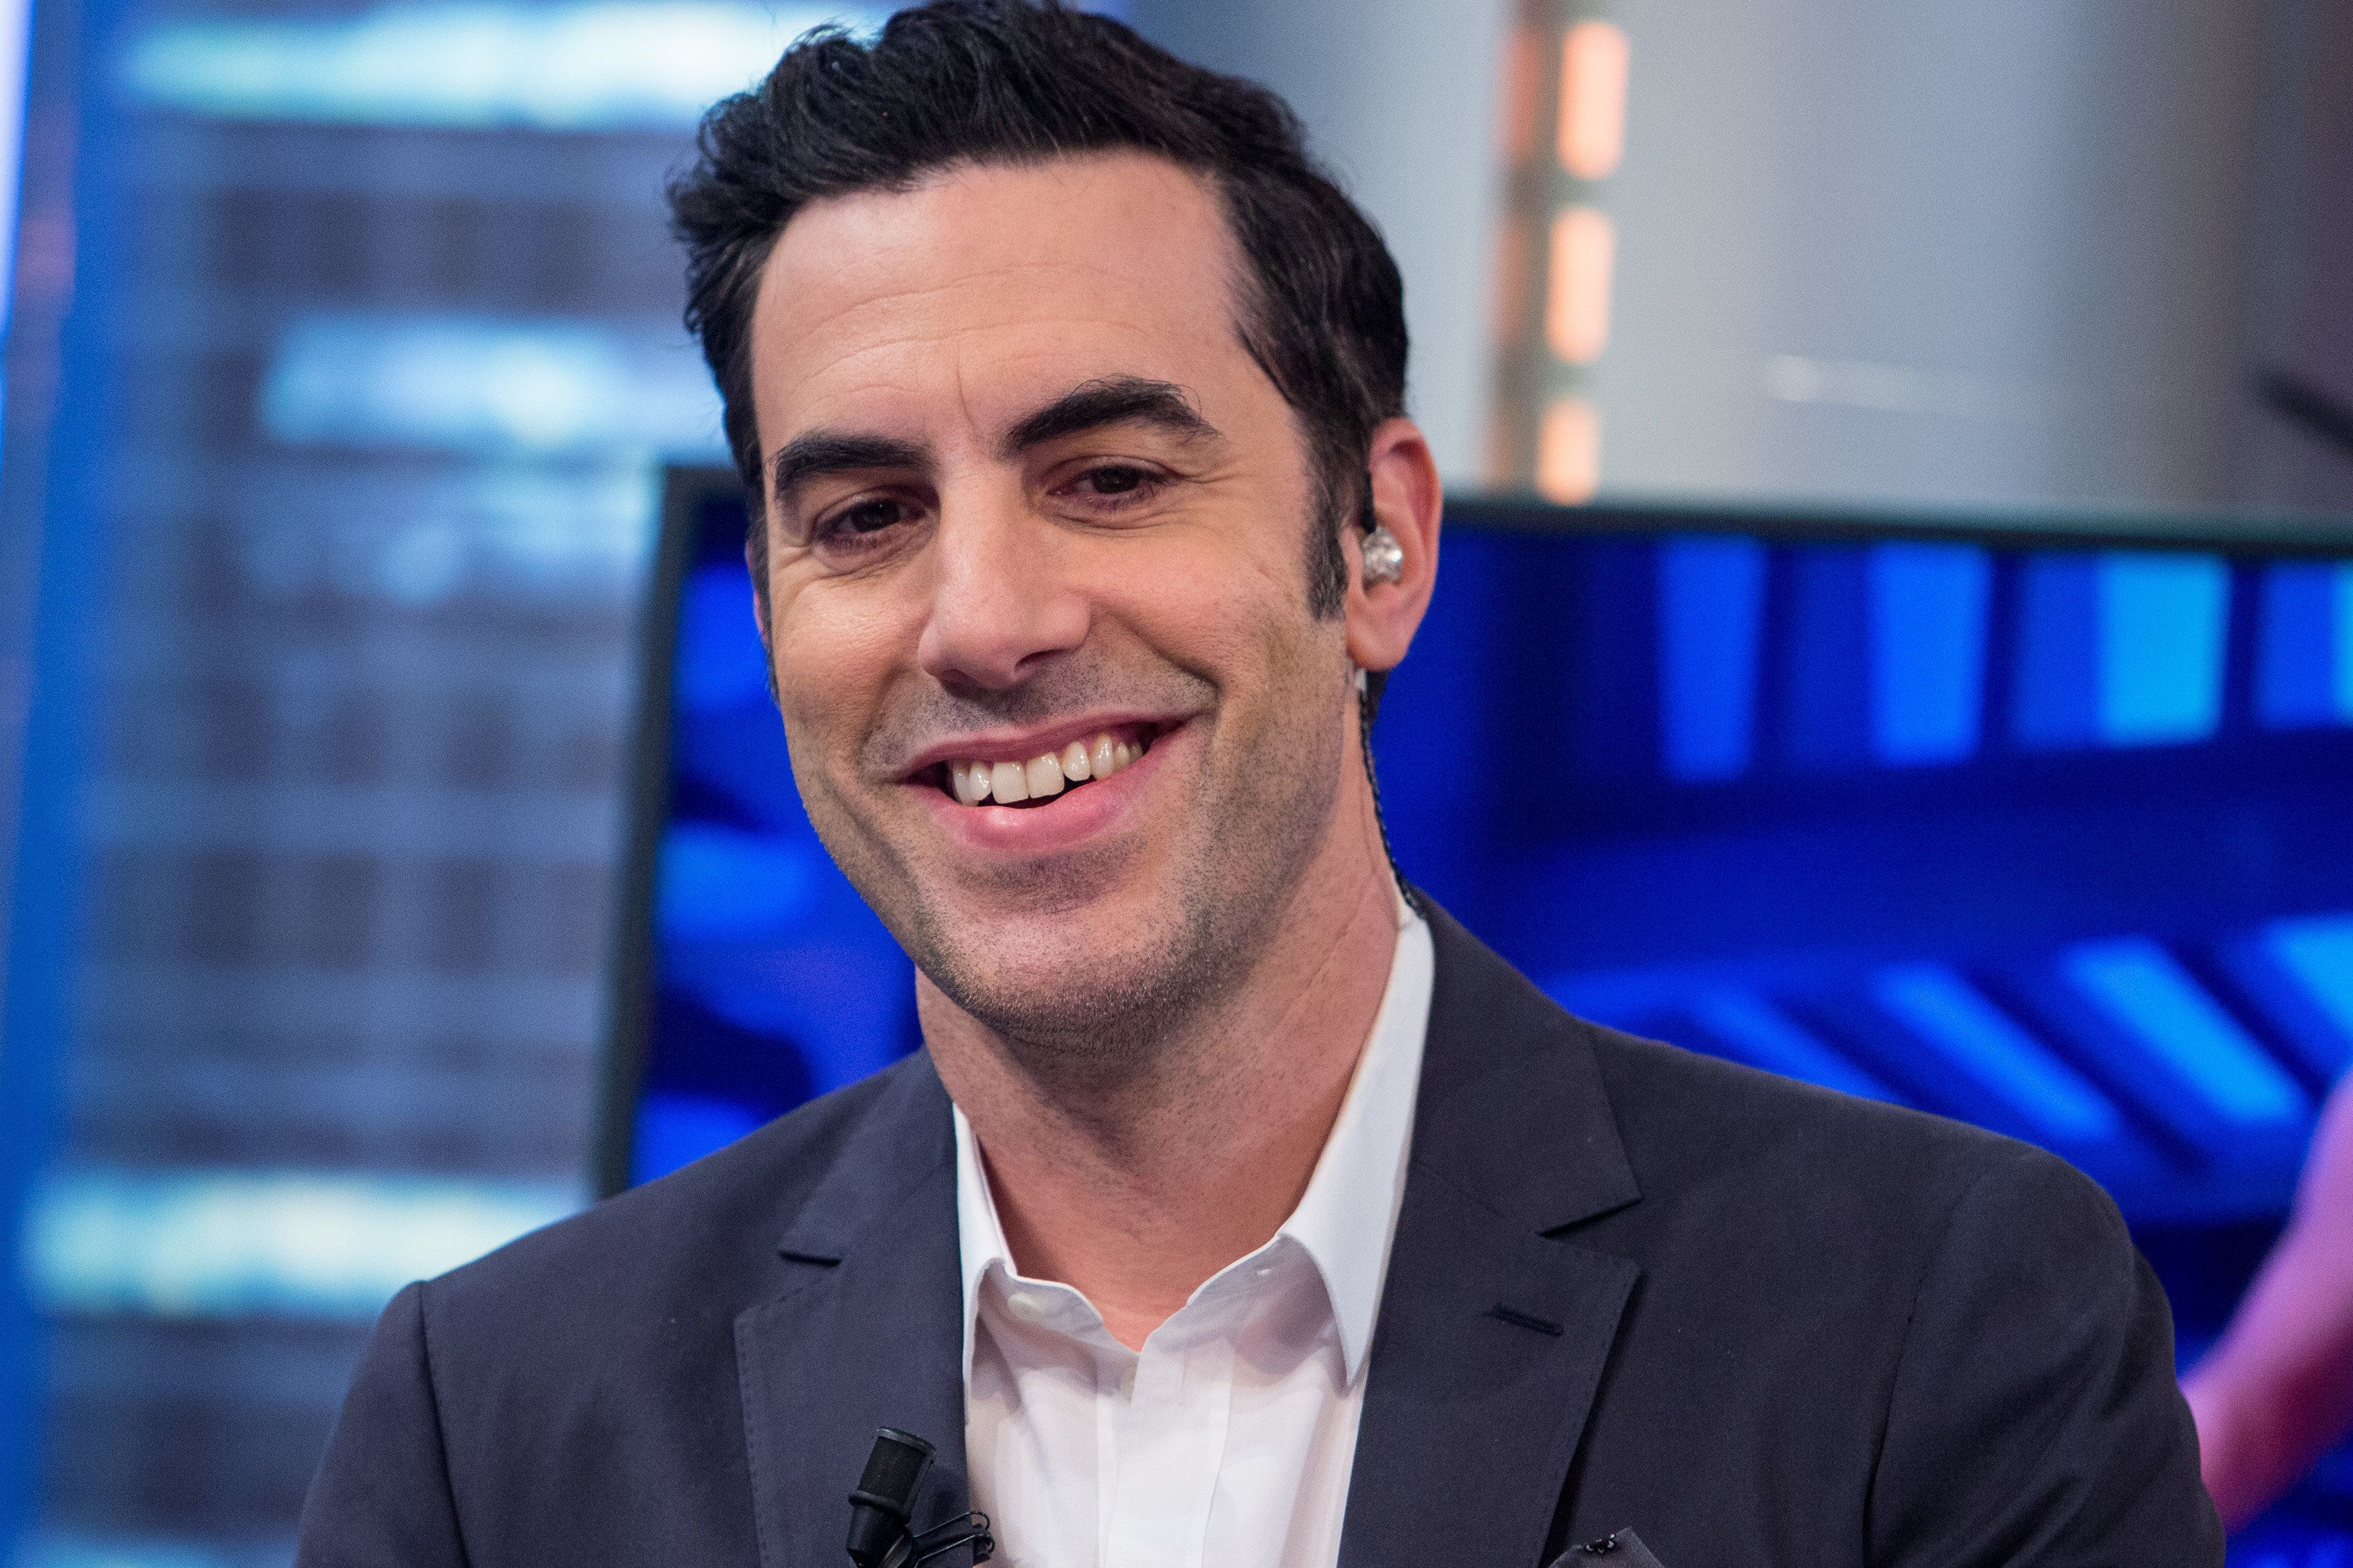 MADRID, SPAIN - MARCH 17:  Sacha Baron Cohen attends 'El Hormiguero' Tv Show at Vertice Studio on March 17, 2016 in Madrid, Spain.  (Photo by Pablo Cuadra/WireImage)